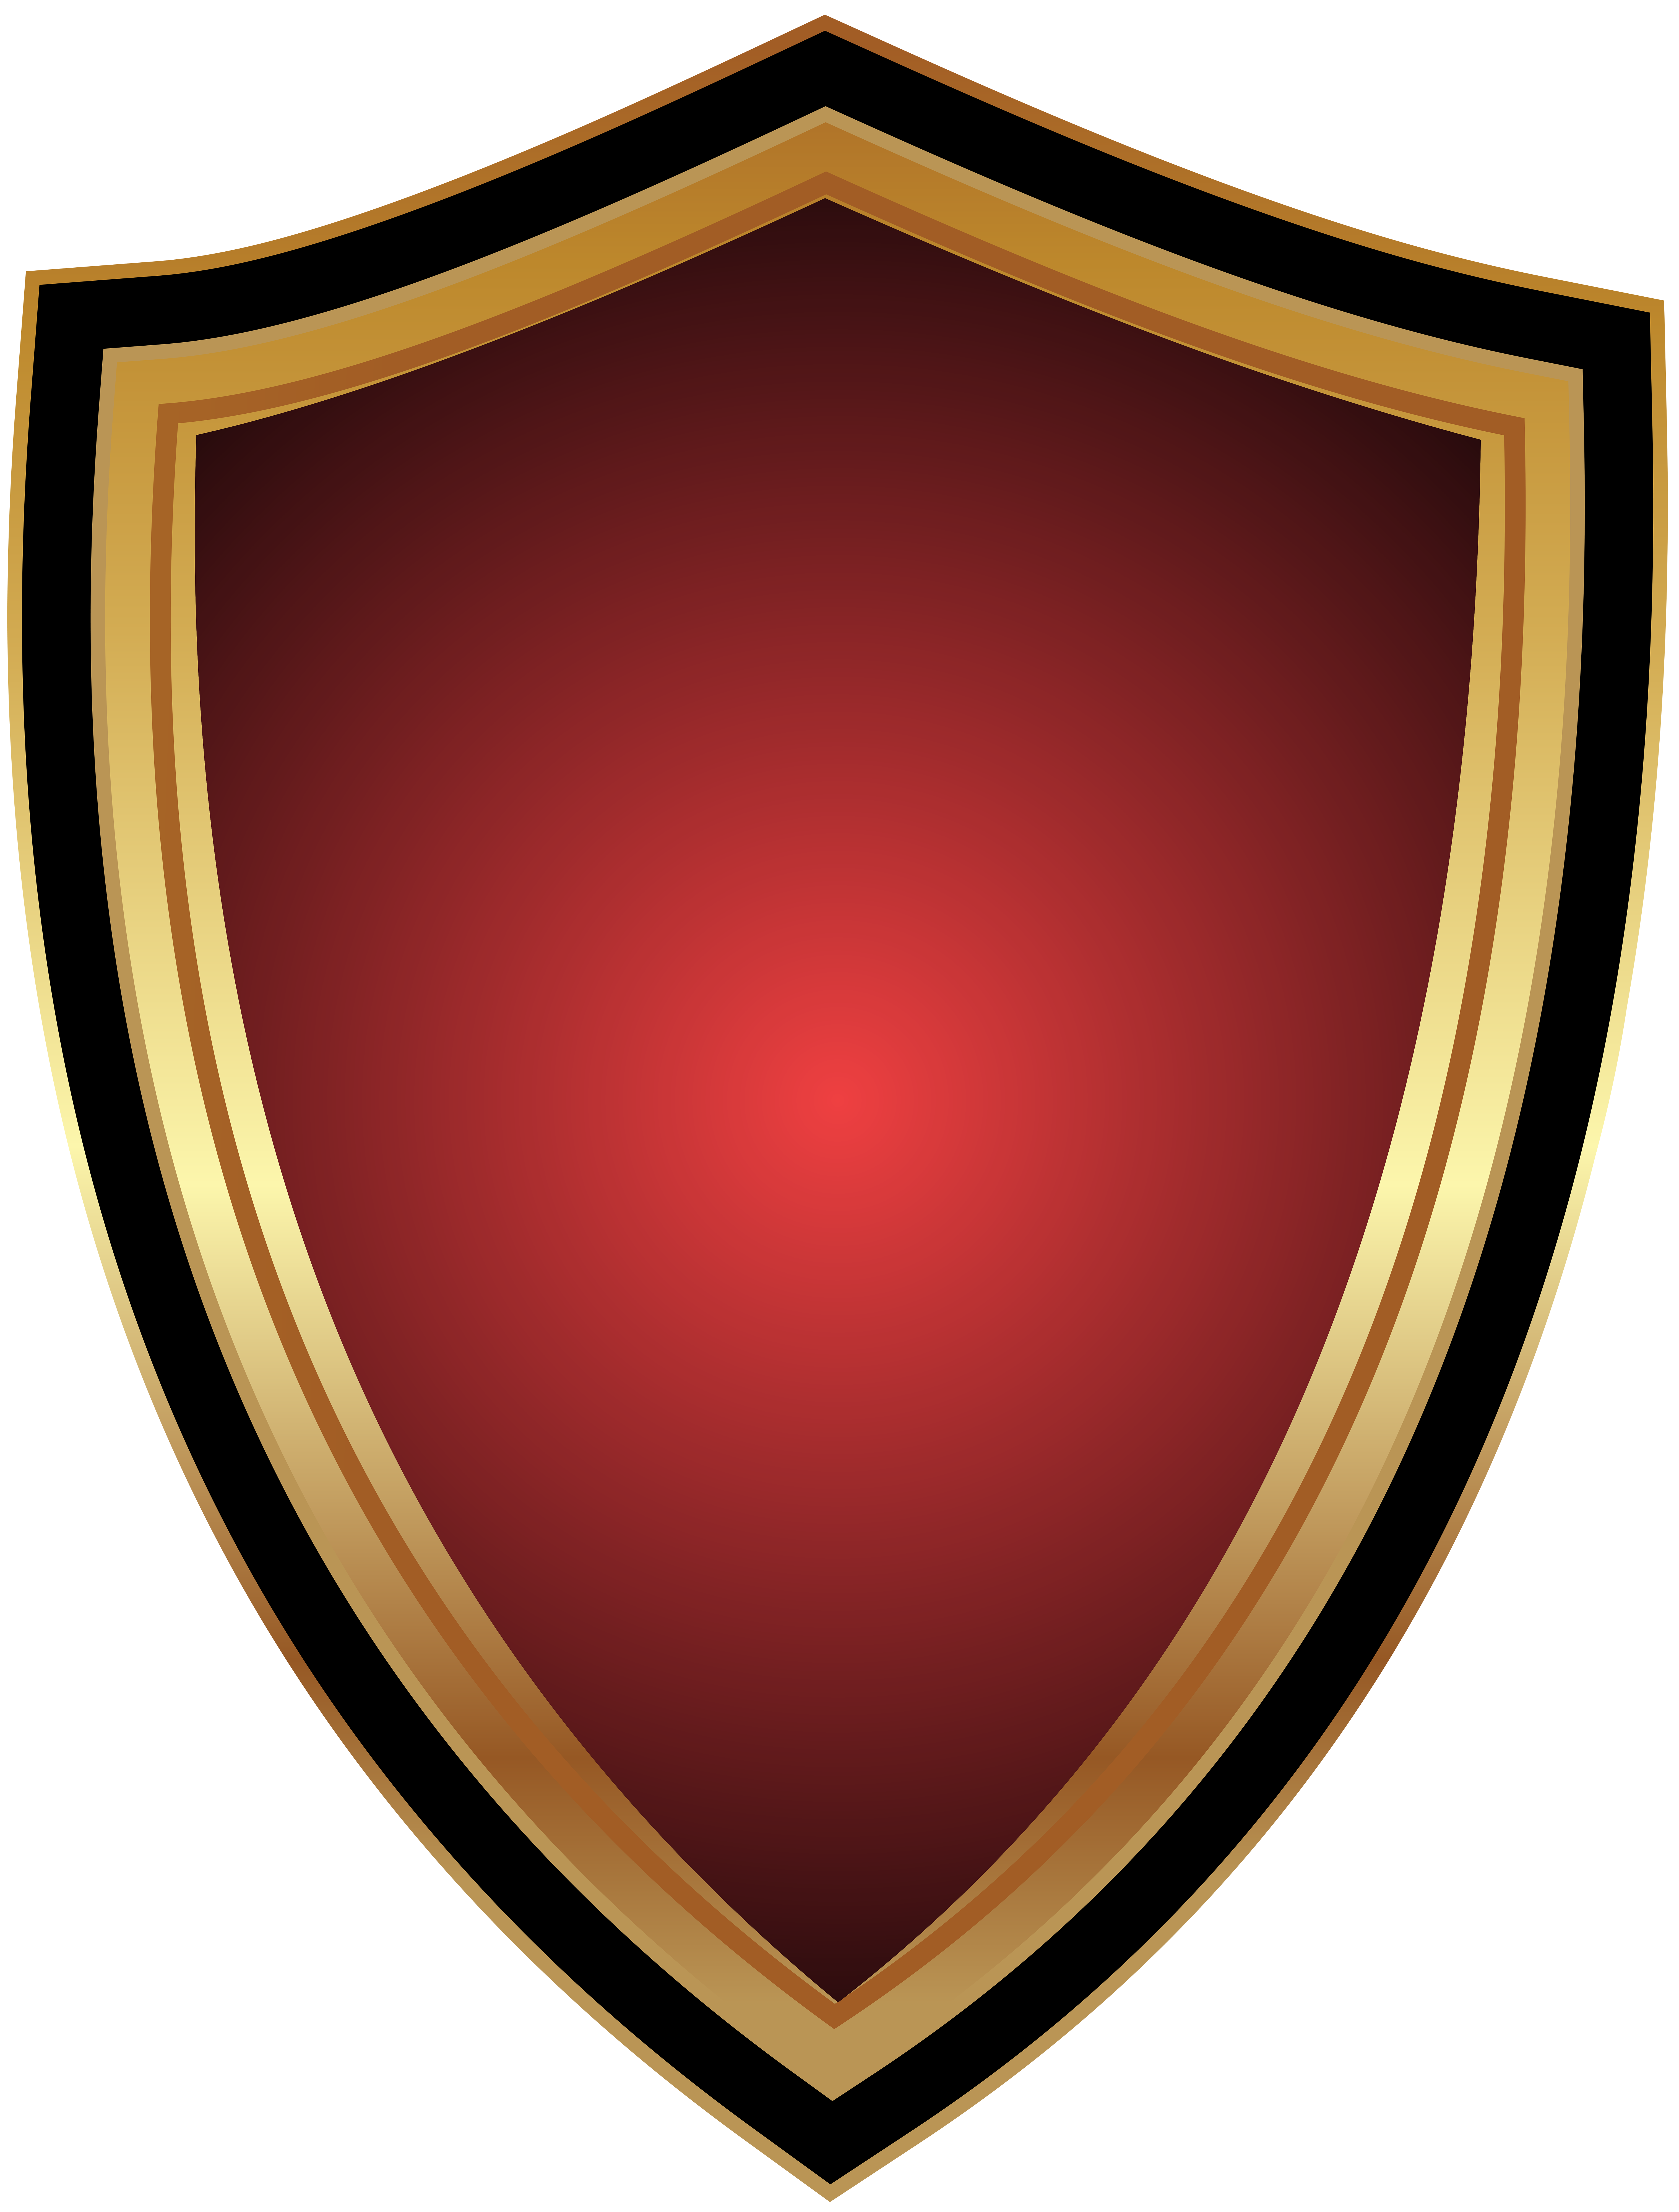 Red Badge Transparent Clip Art PNG Image.